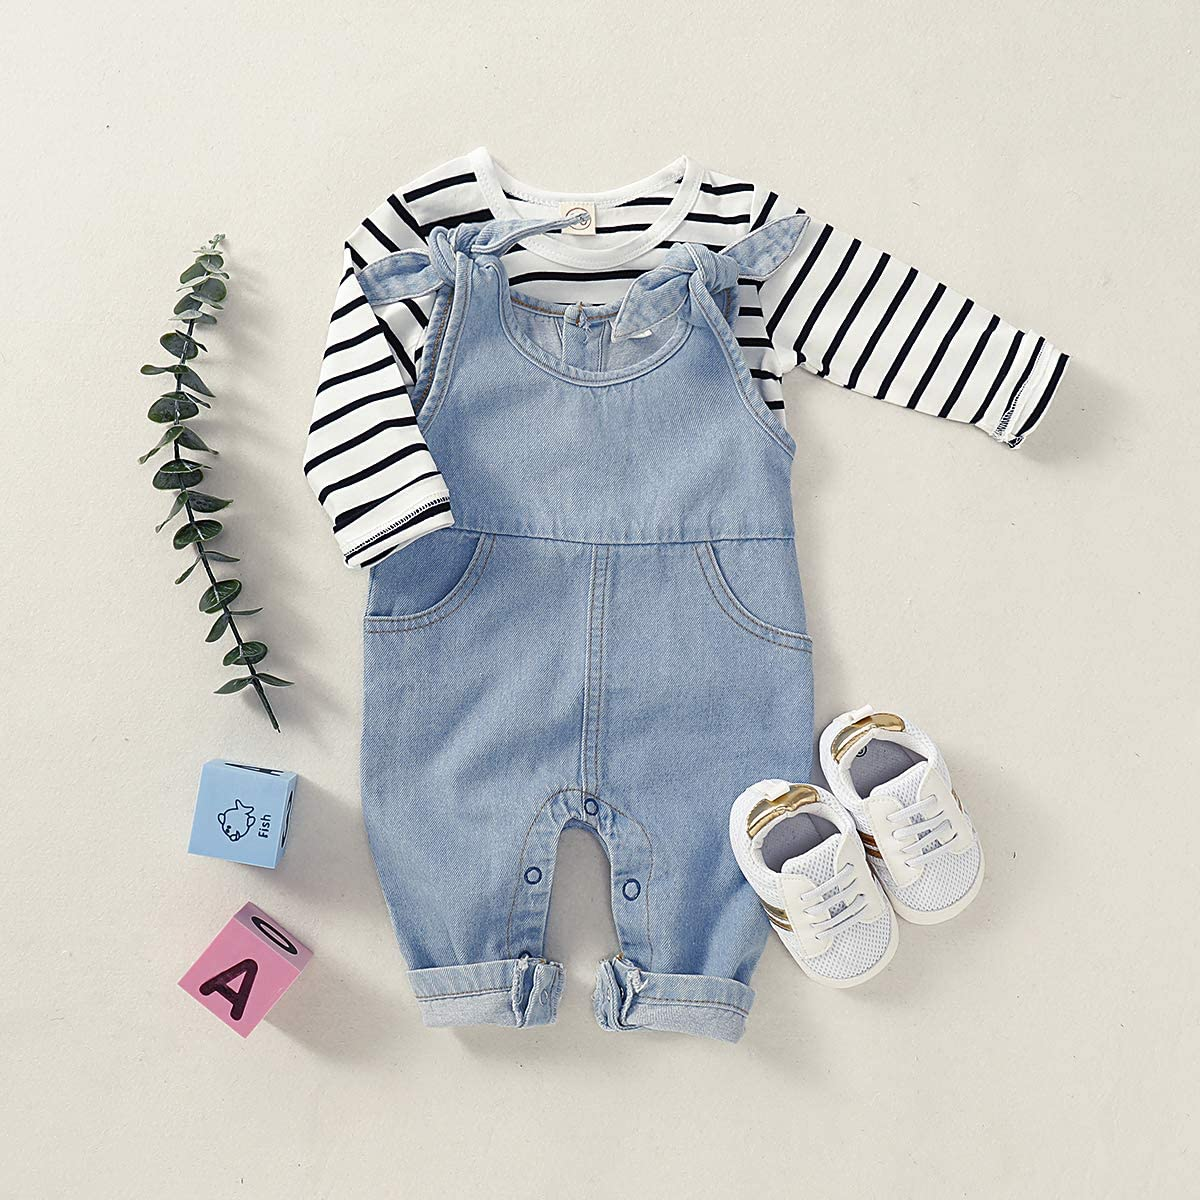 Newborn Infant Baby Girls Denim Bodysuit Halter Sleeve Romper with Two Pocket Jeans Overalls